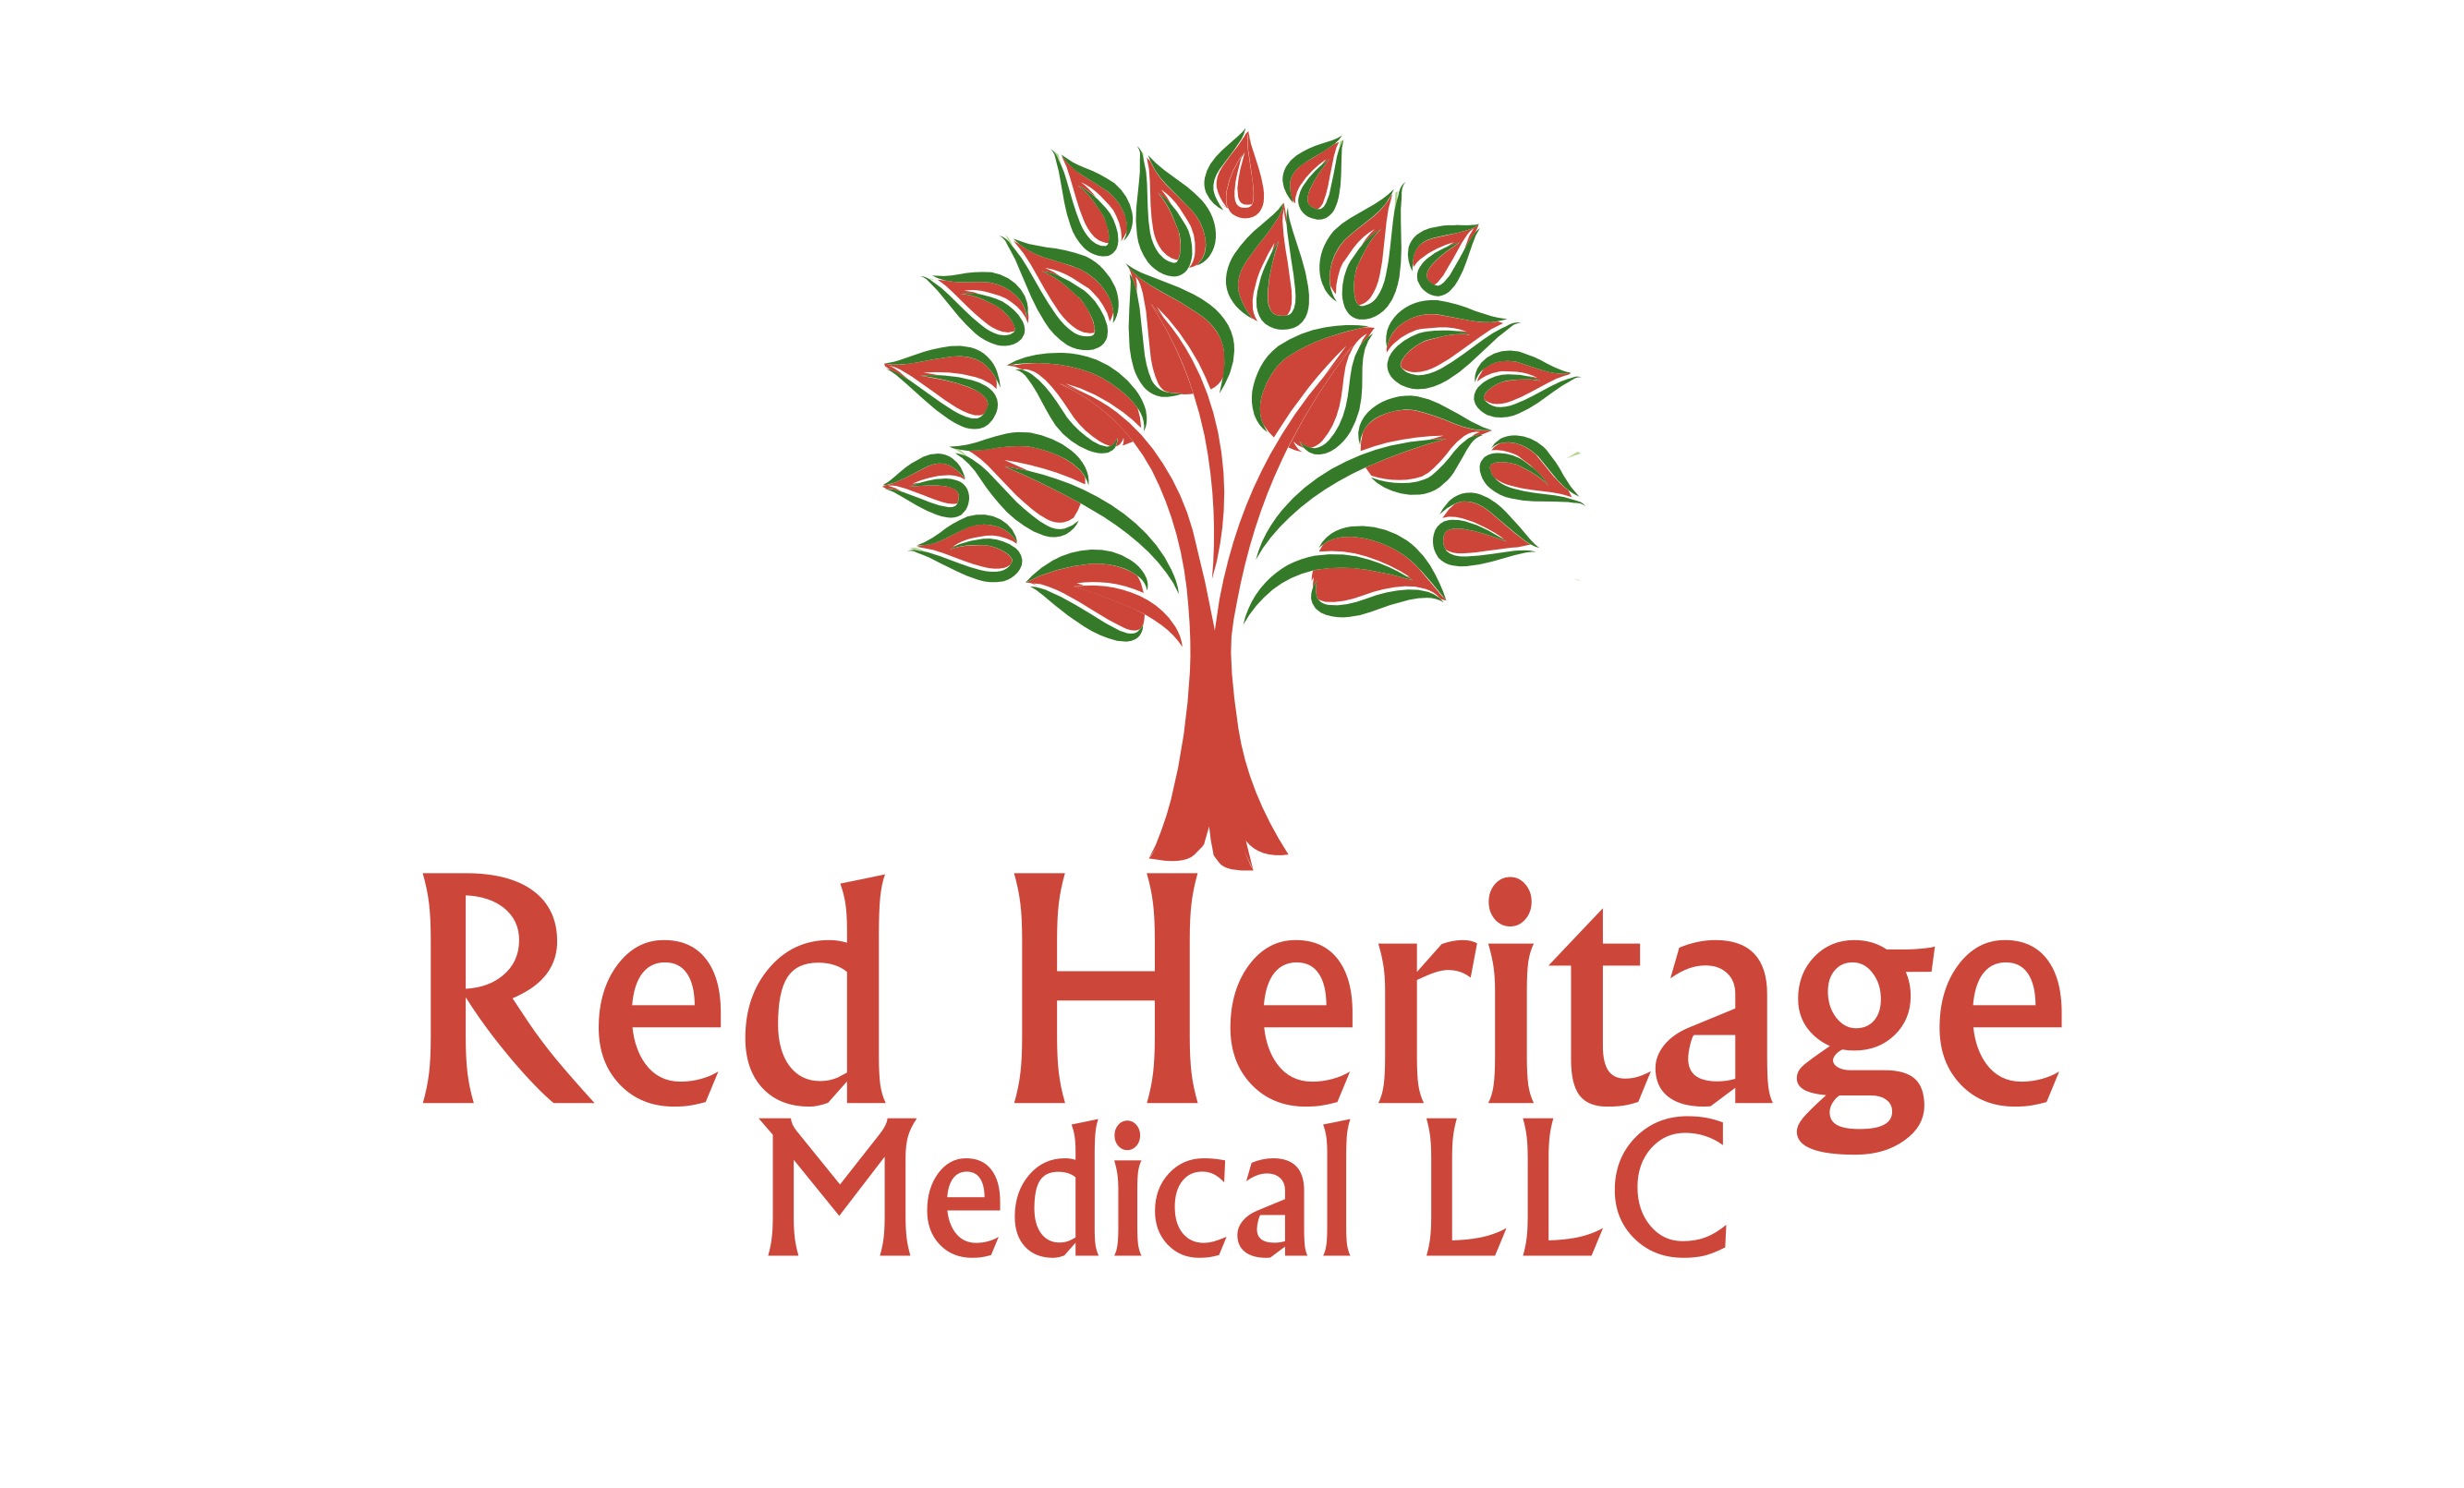 Red Heritage Medical LLC